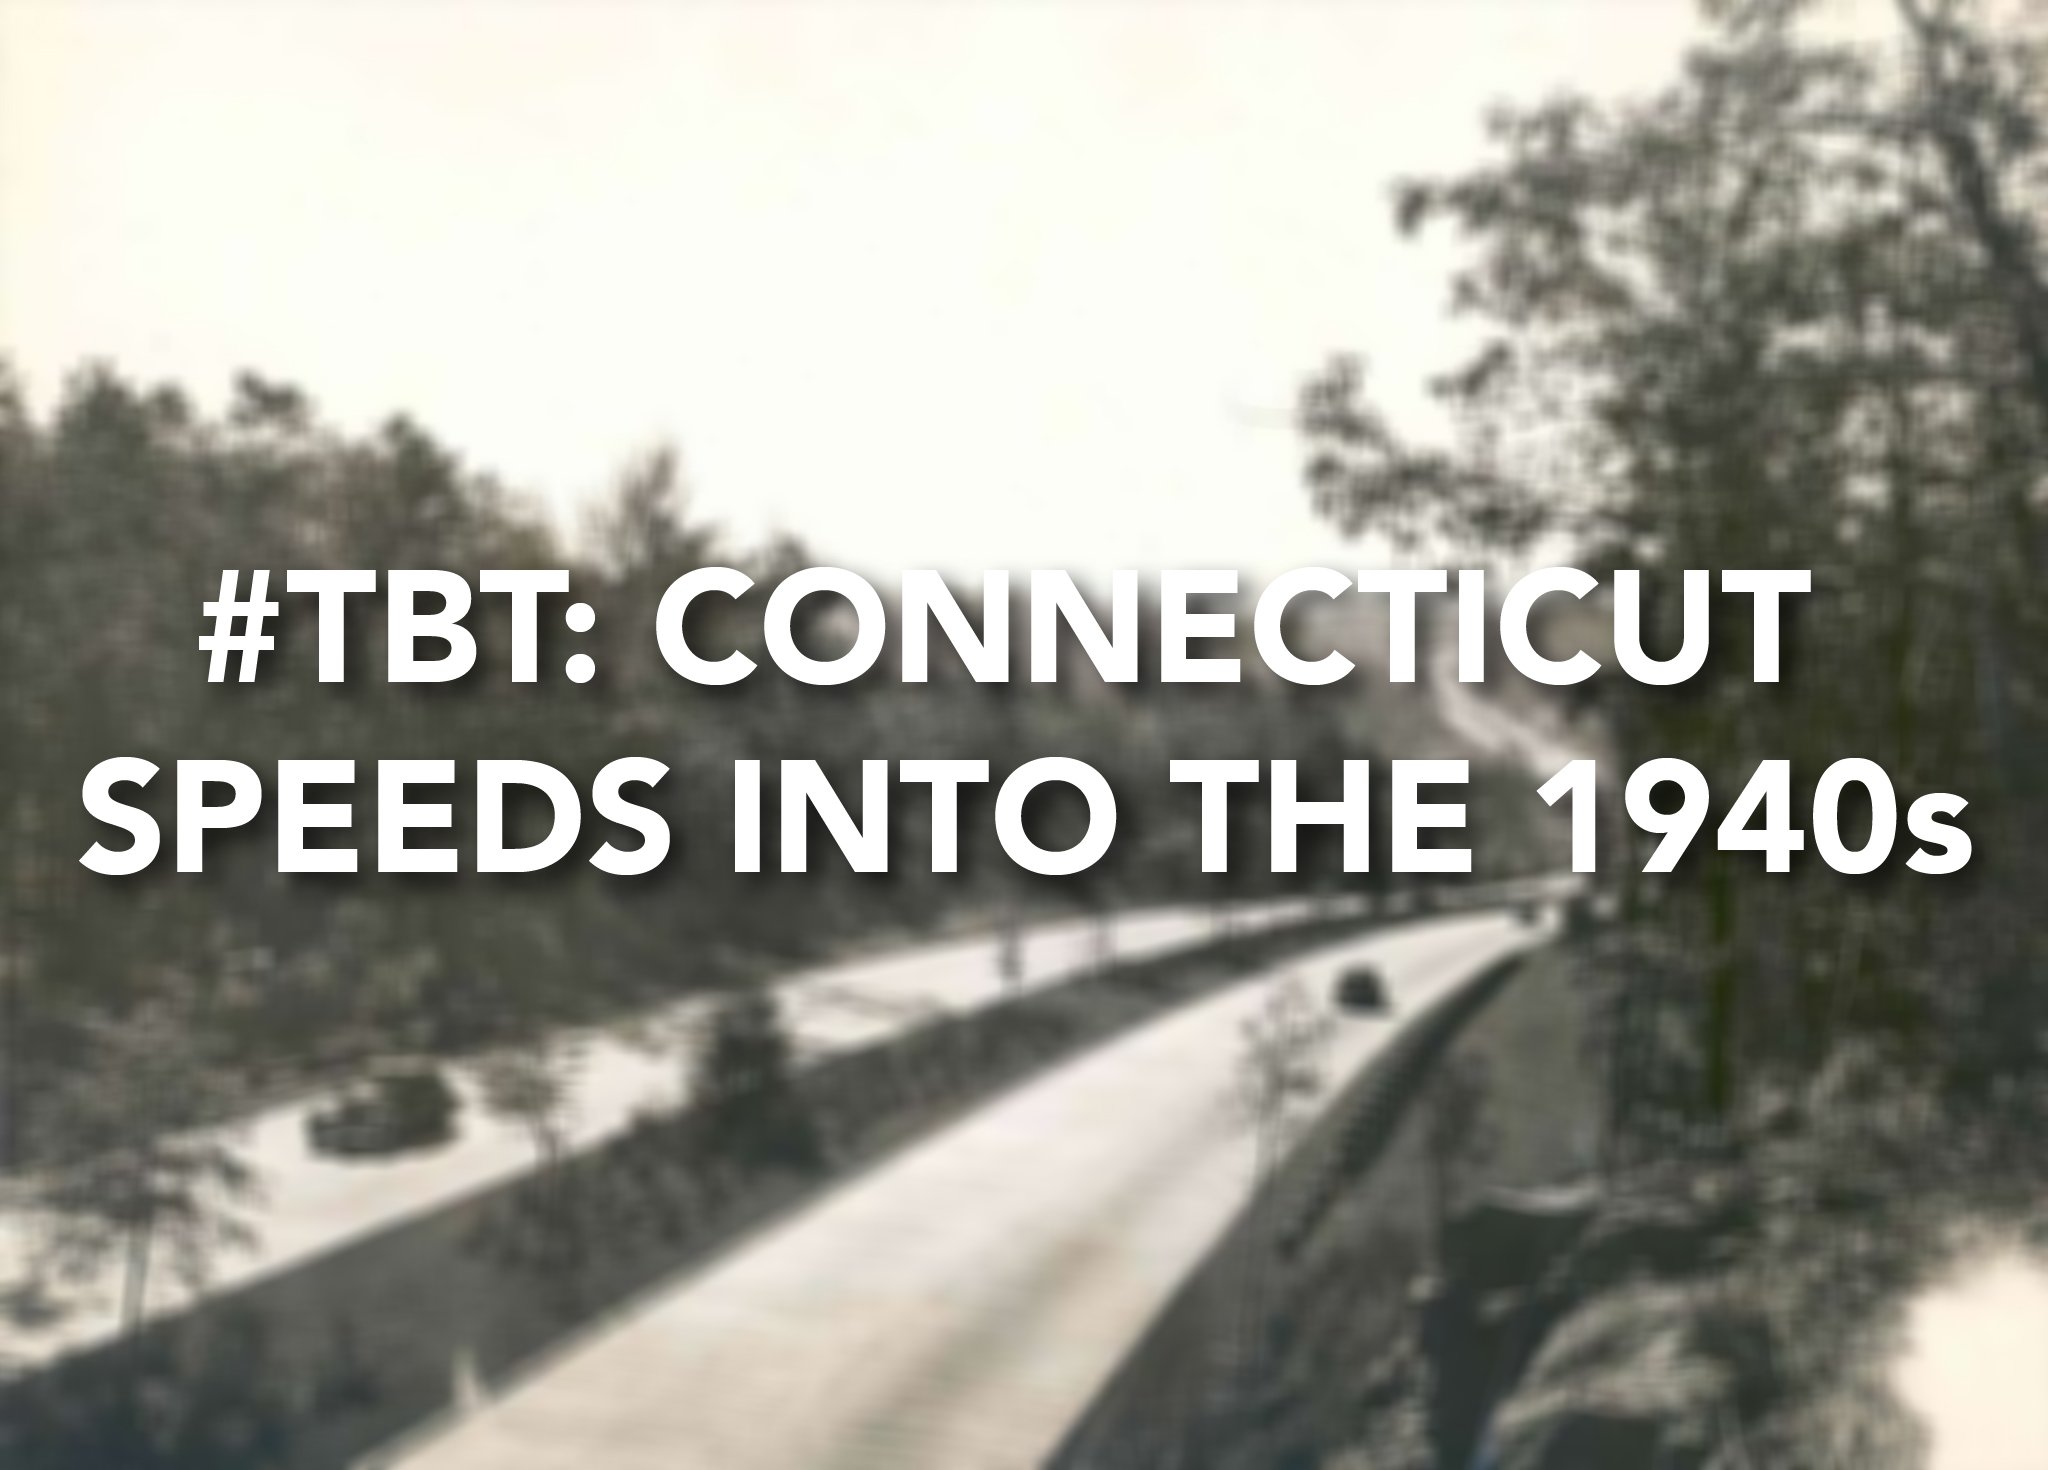 #ThrowbackThursday: Connecticut speeds into the 1940s